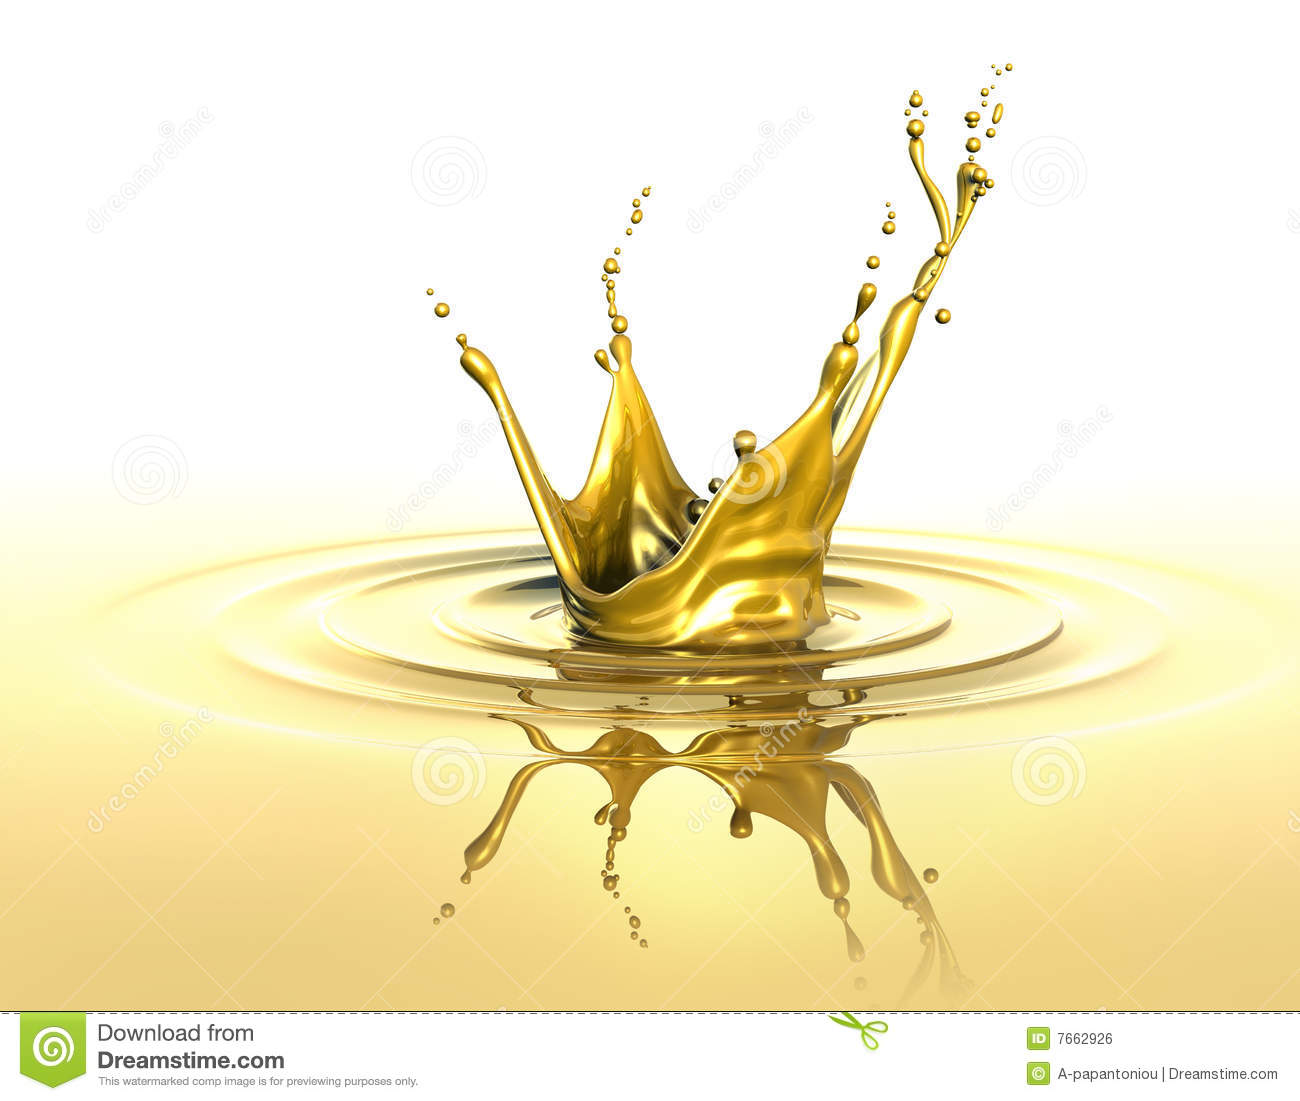 Golden Splash Royalty Free Stock Image - Image: 7662926